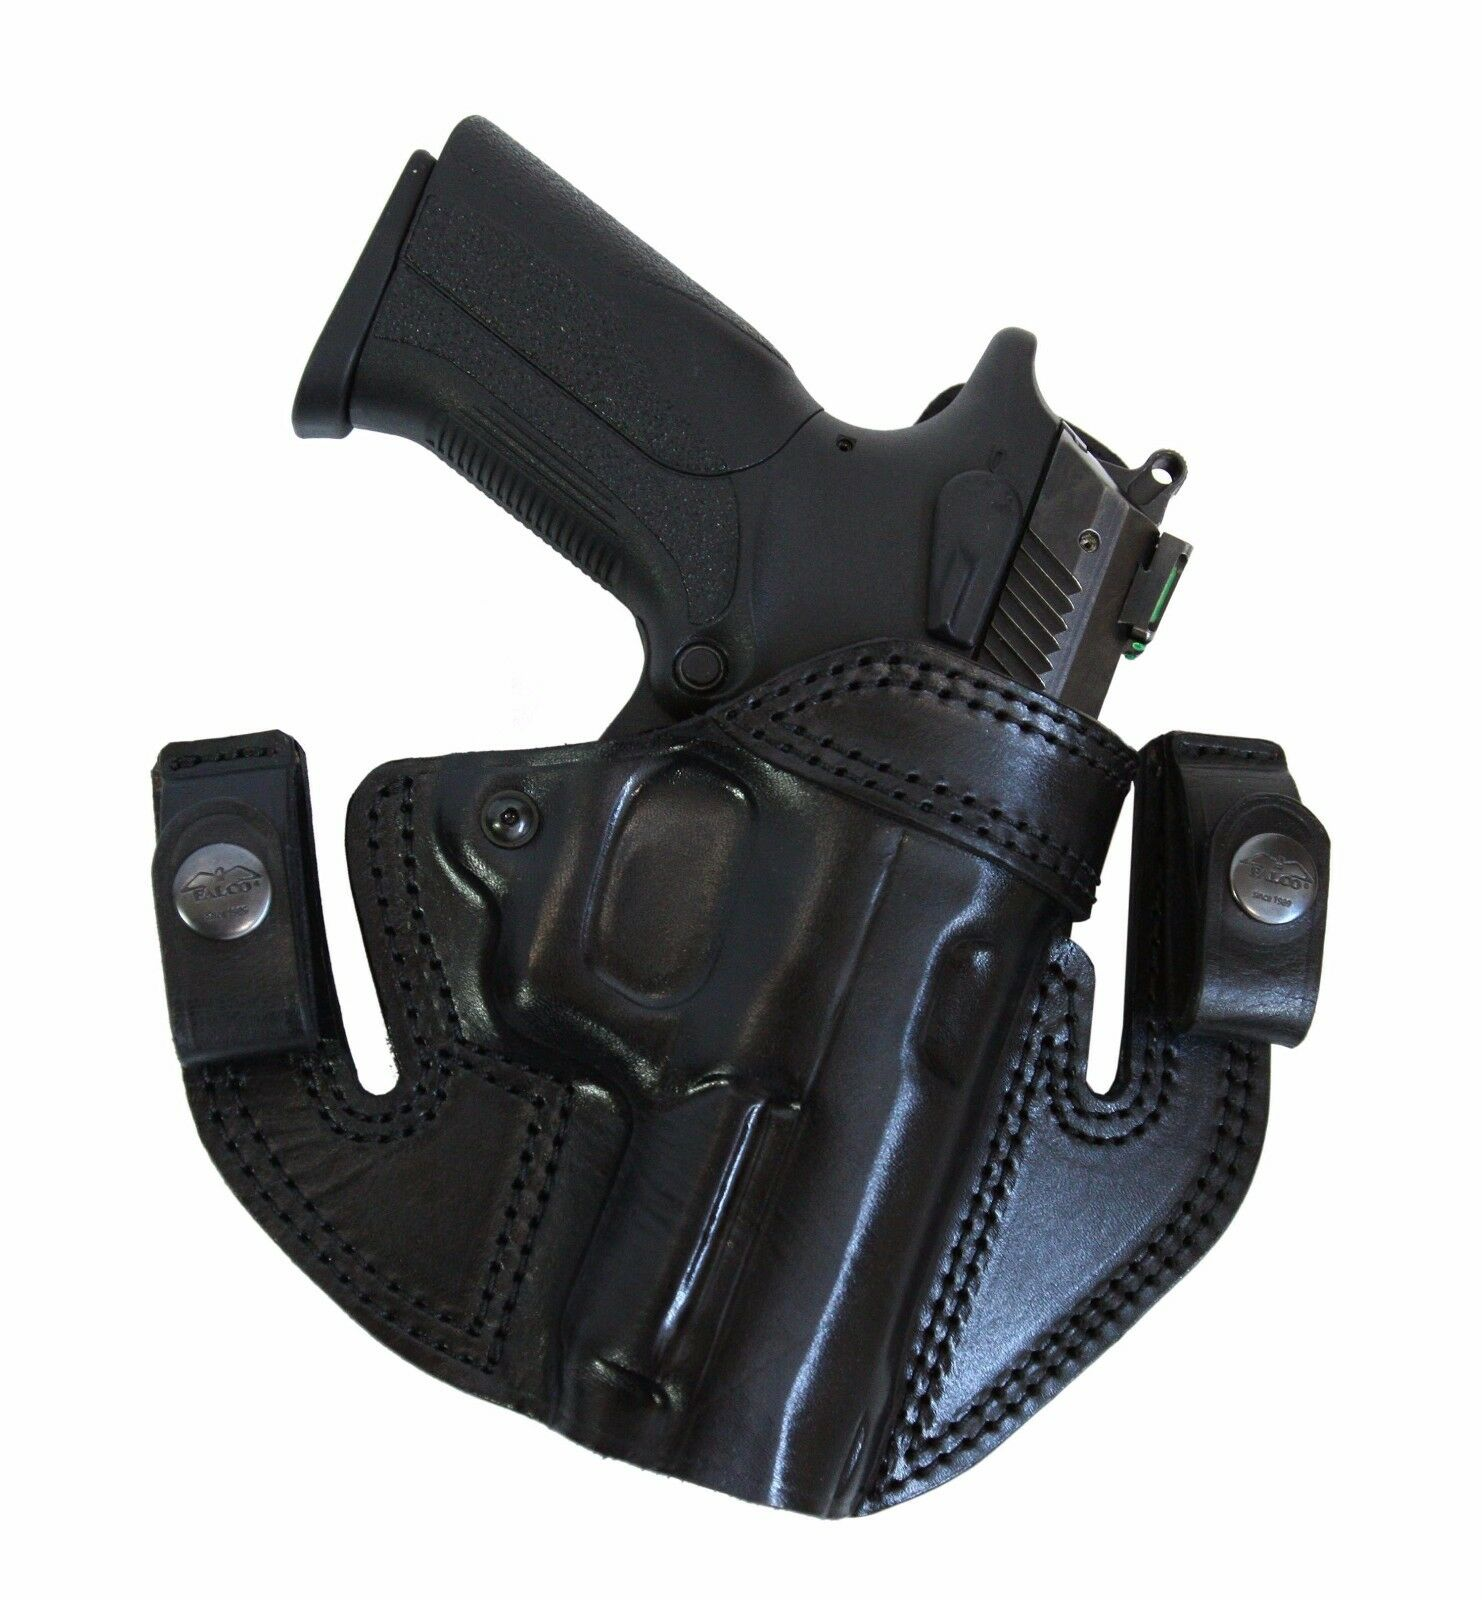 Falco Holsters IWB   OWB Leather holster for Glock 26, 27, 33